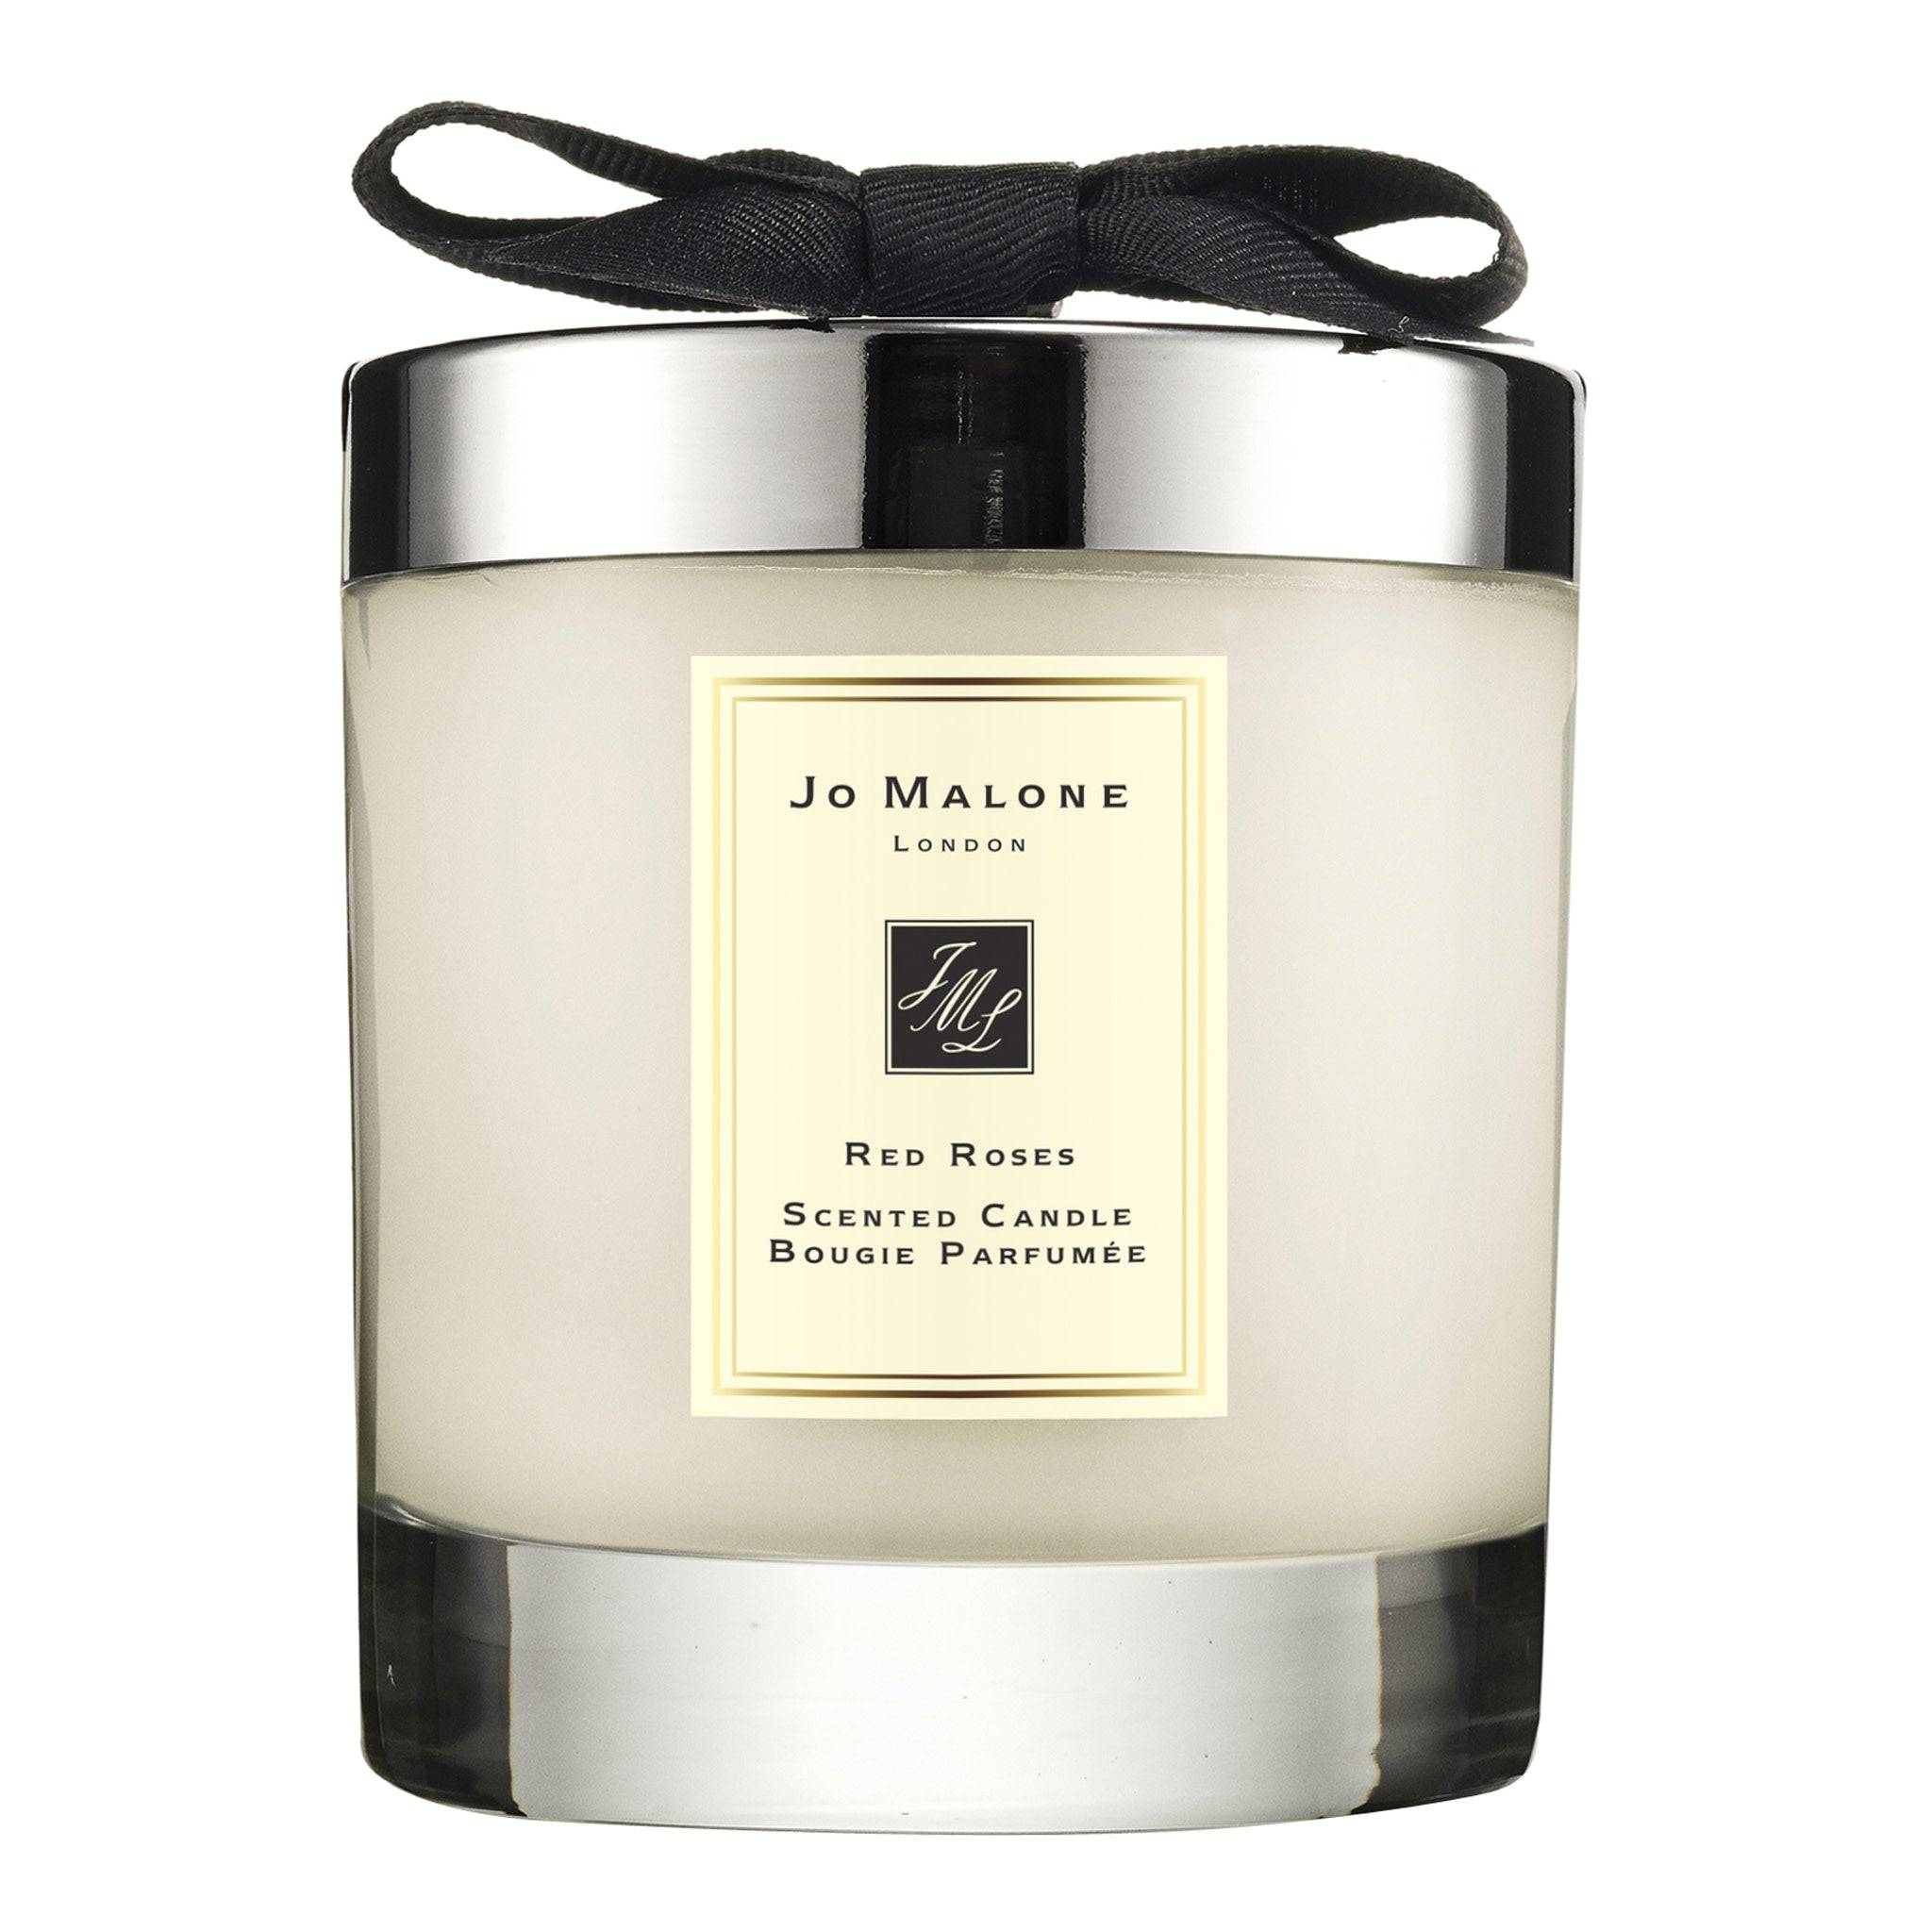 Jo Malone London Red Roses Home Candle